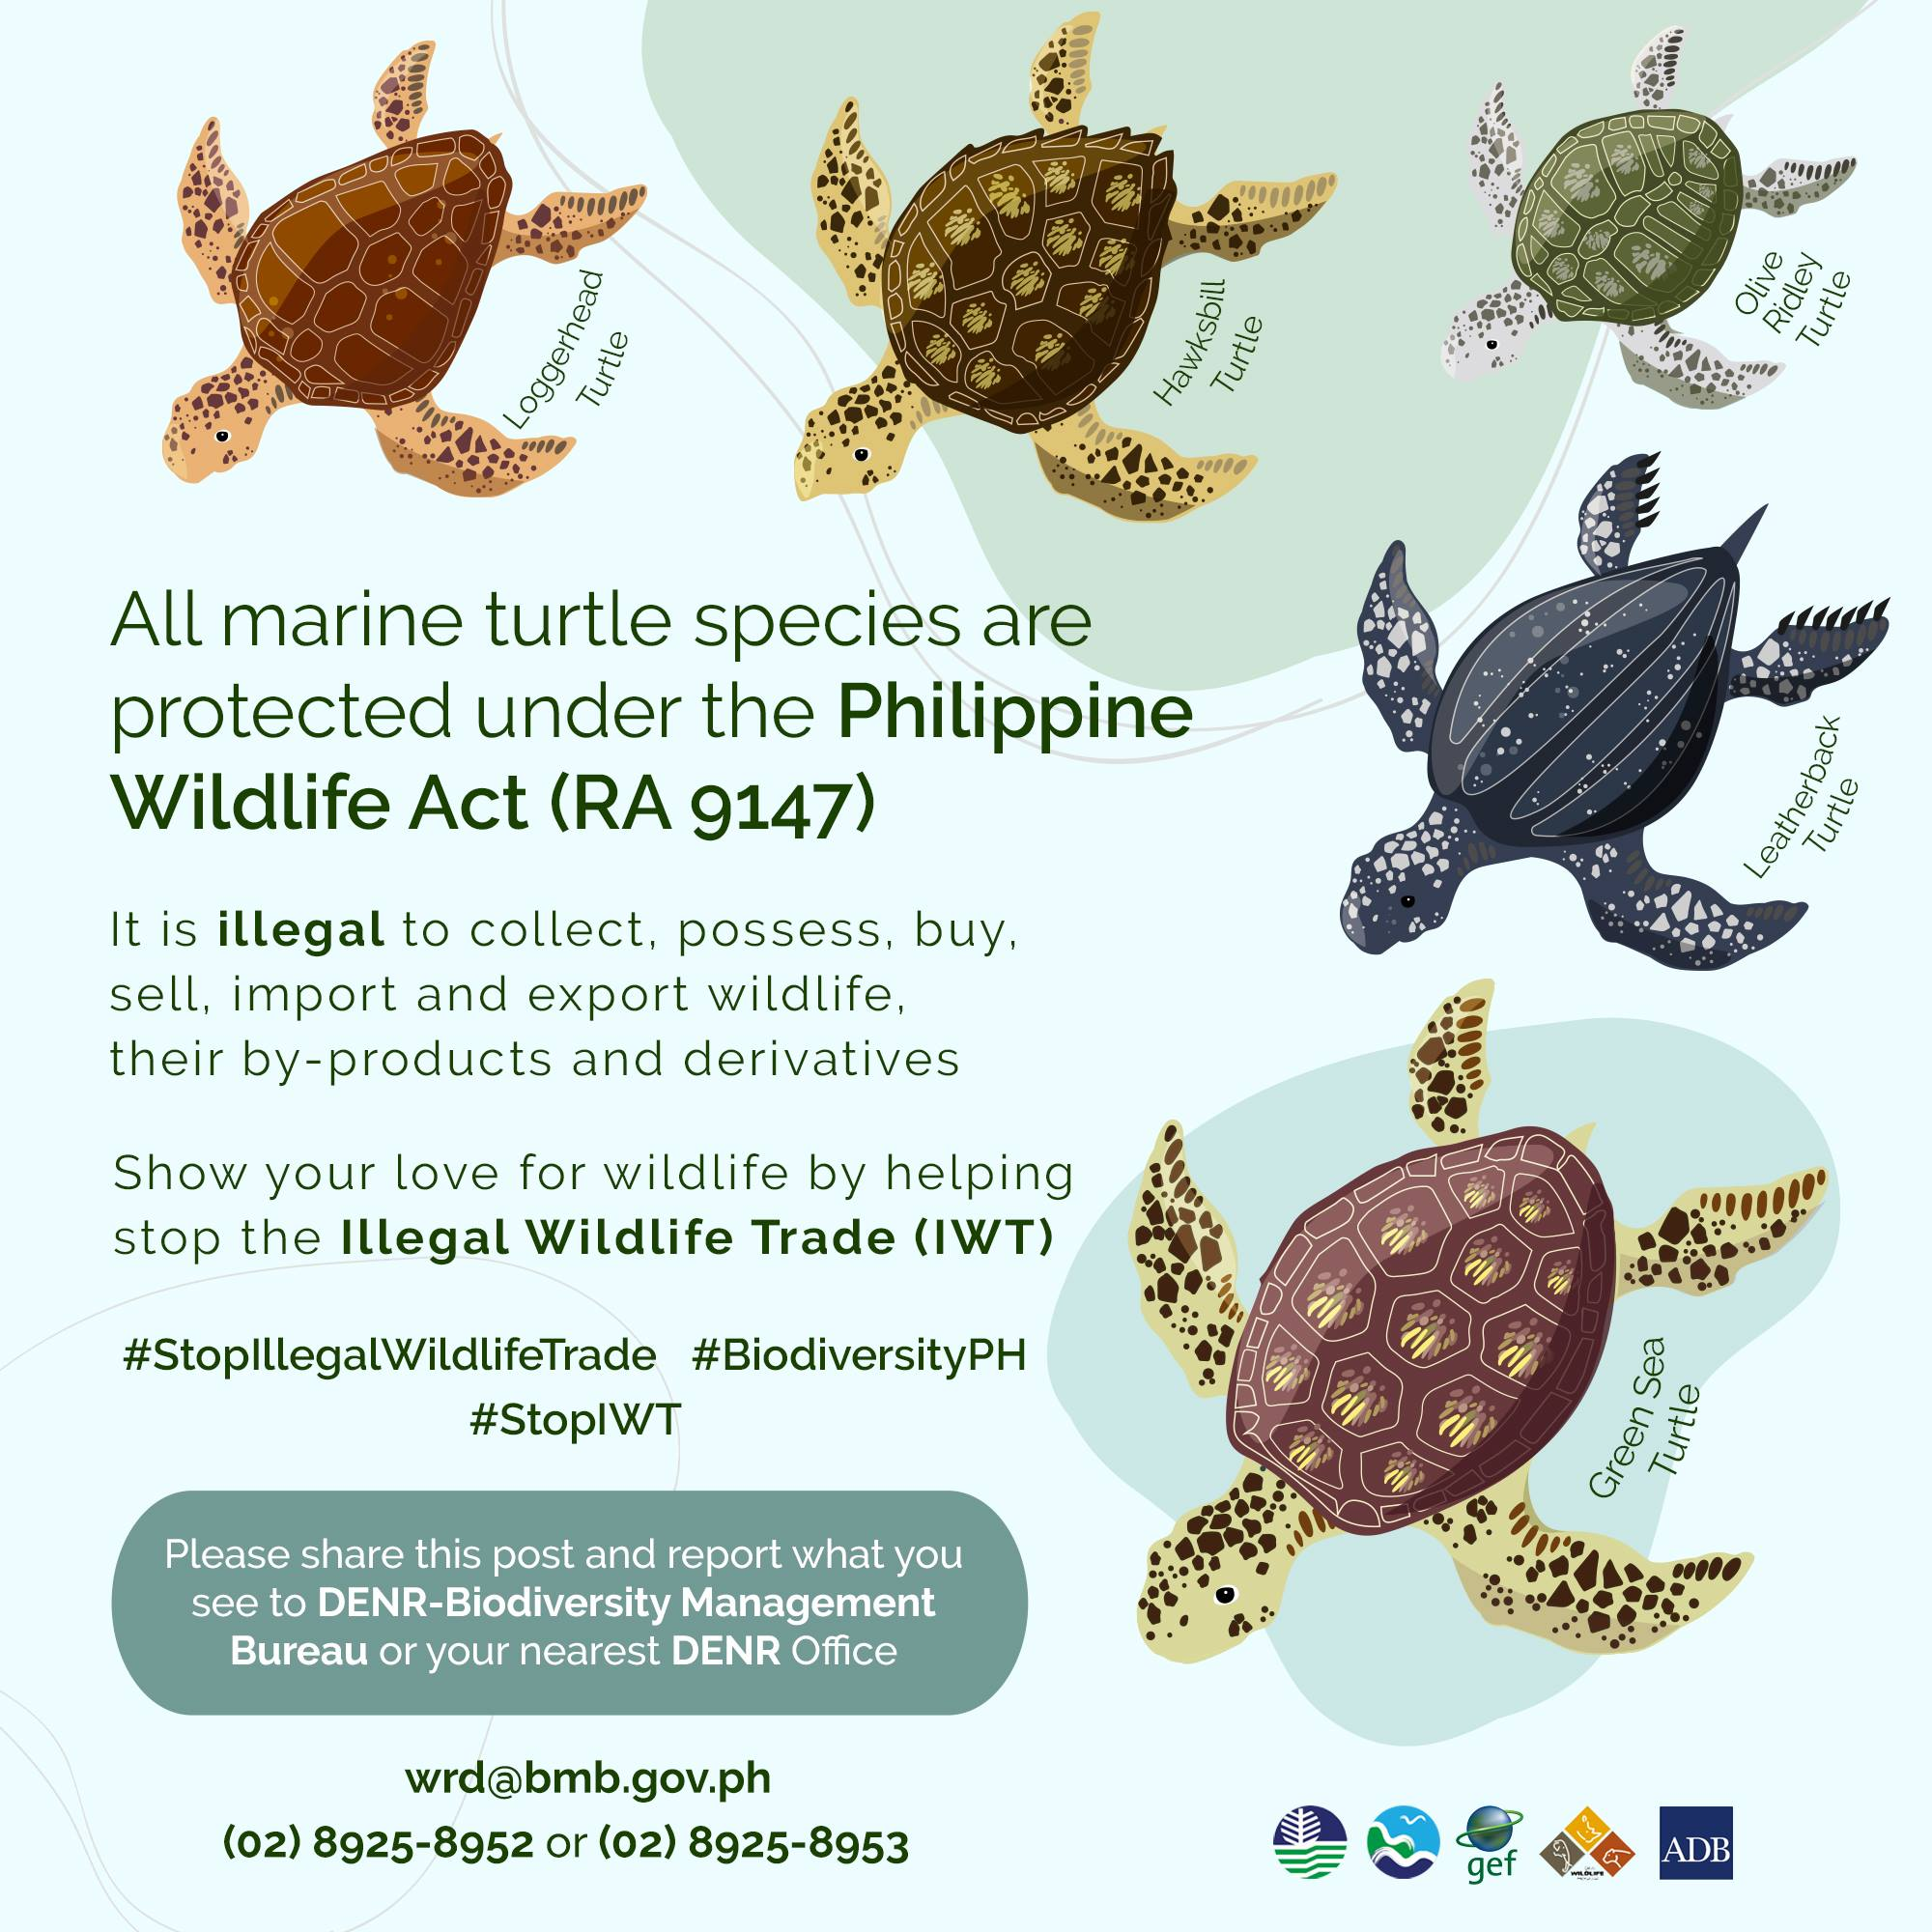 DENR IWT Species Spotlights (Marine Turtles)